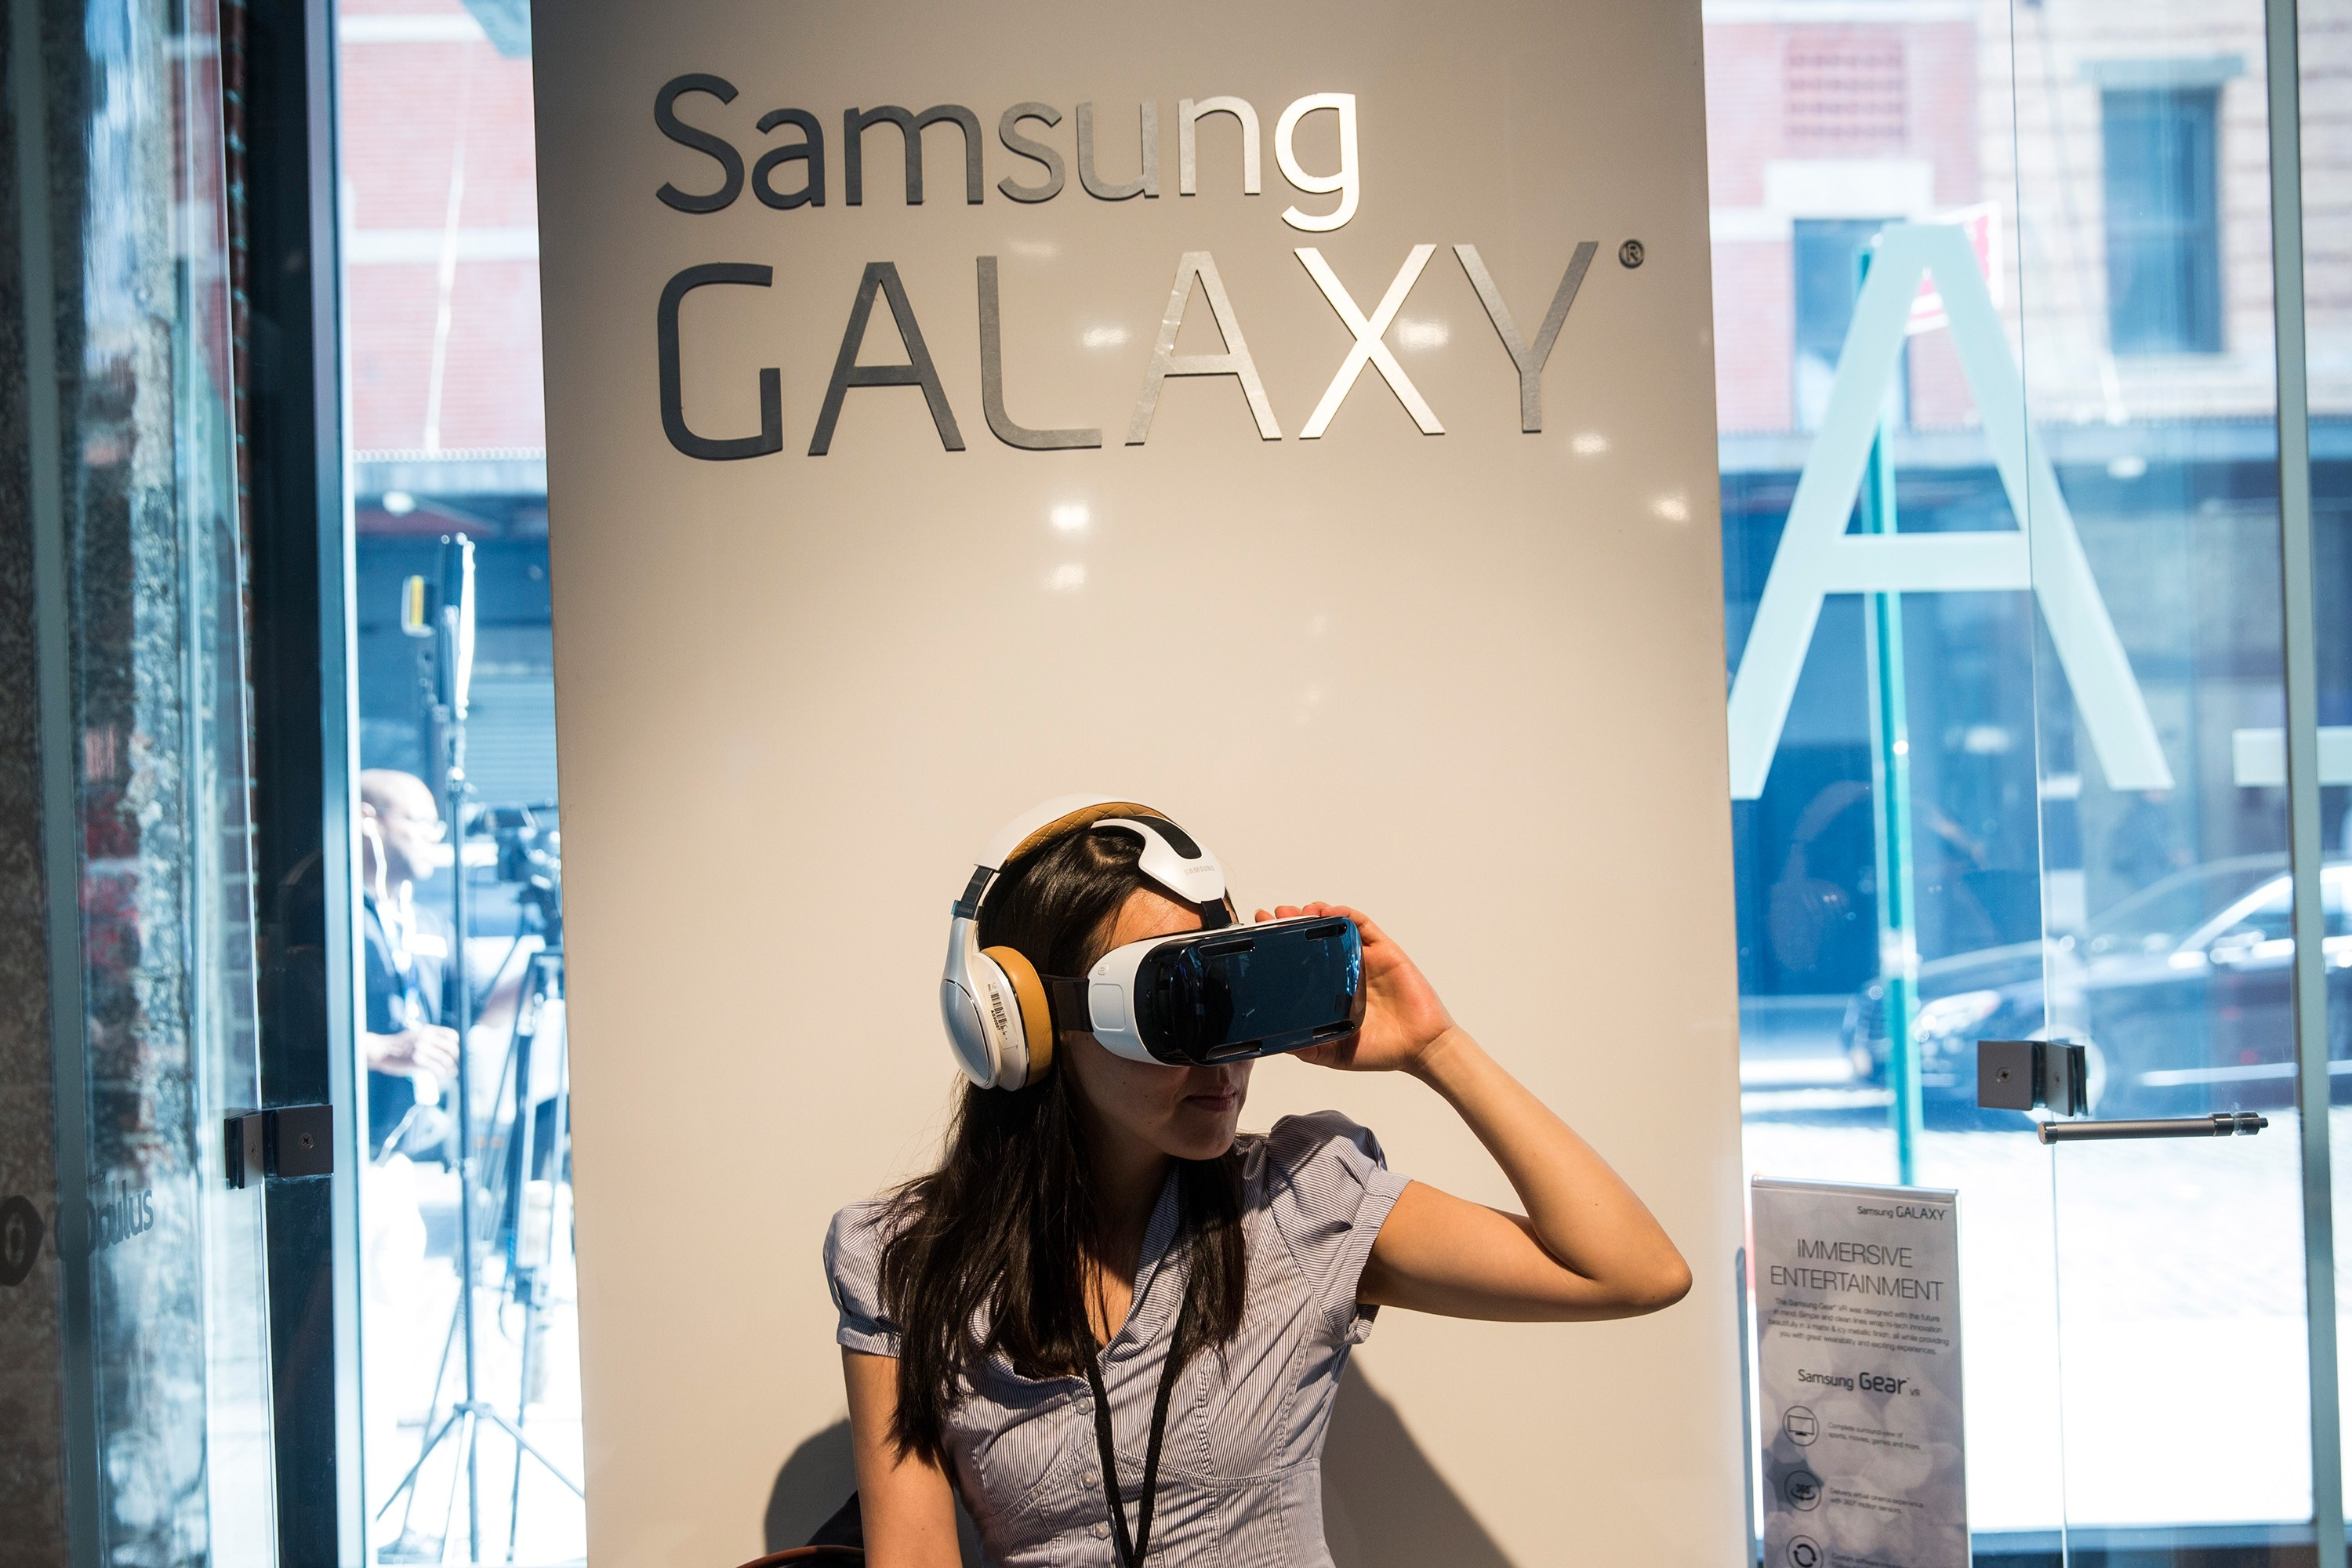 A woman tries out the Samsung Gear, a virtual reality simulator that uses the Samsung Galaxy Note 4 for a screen at a media launch event on September 3, 2014 in New York City. The Note 4 features a 5.7-inch screen.  (Photo by Andrew Burton/Getty Images)